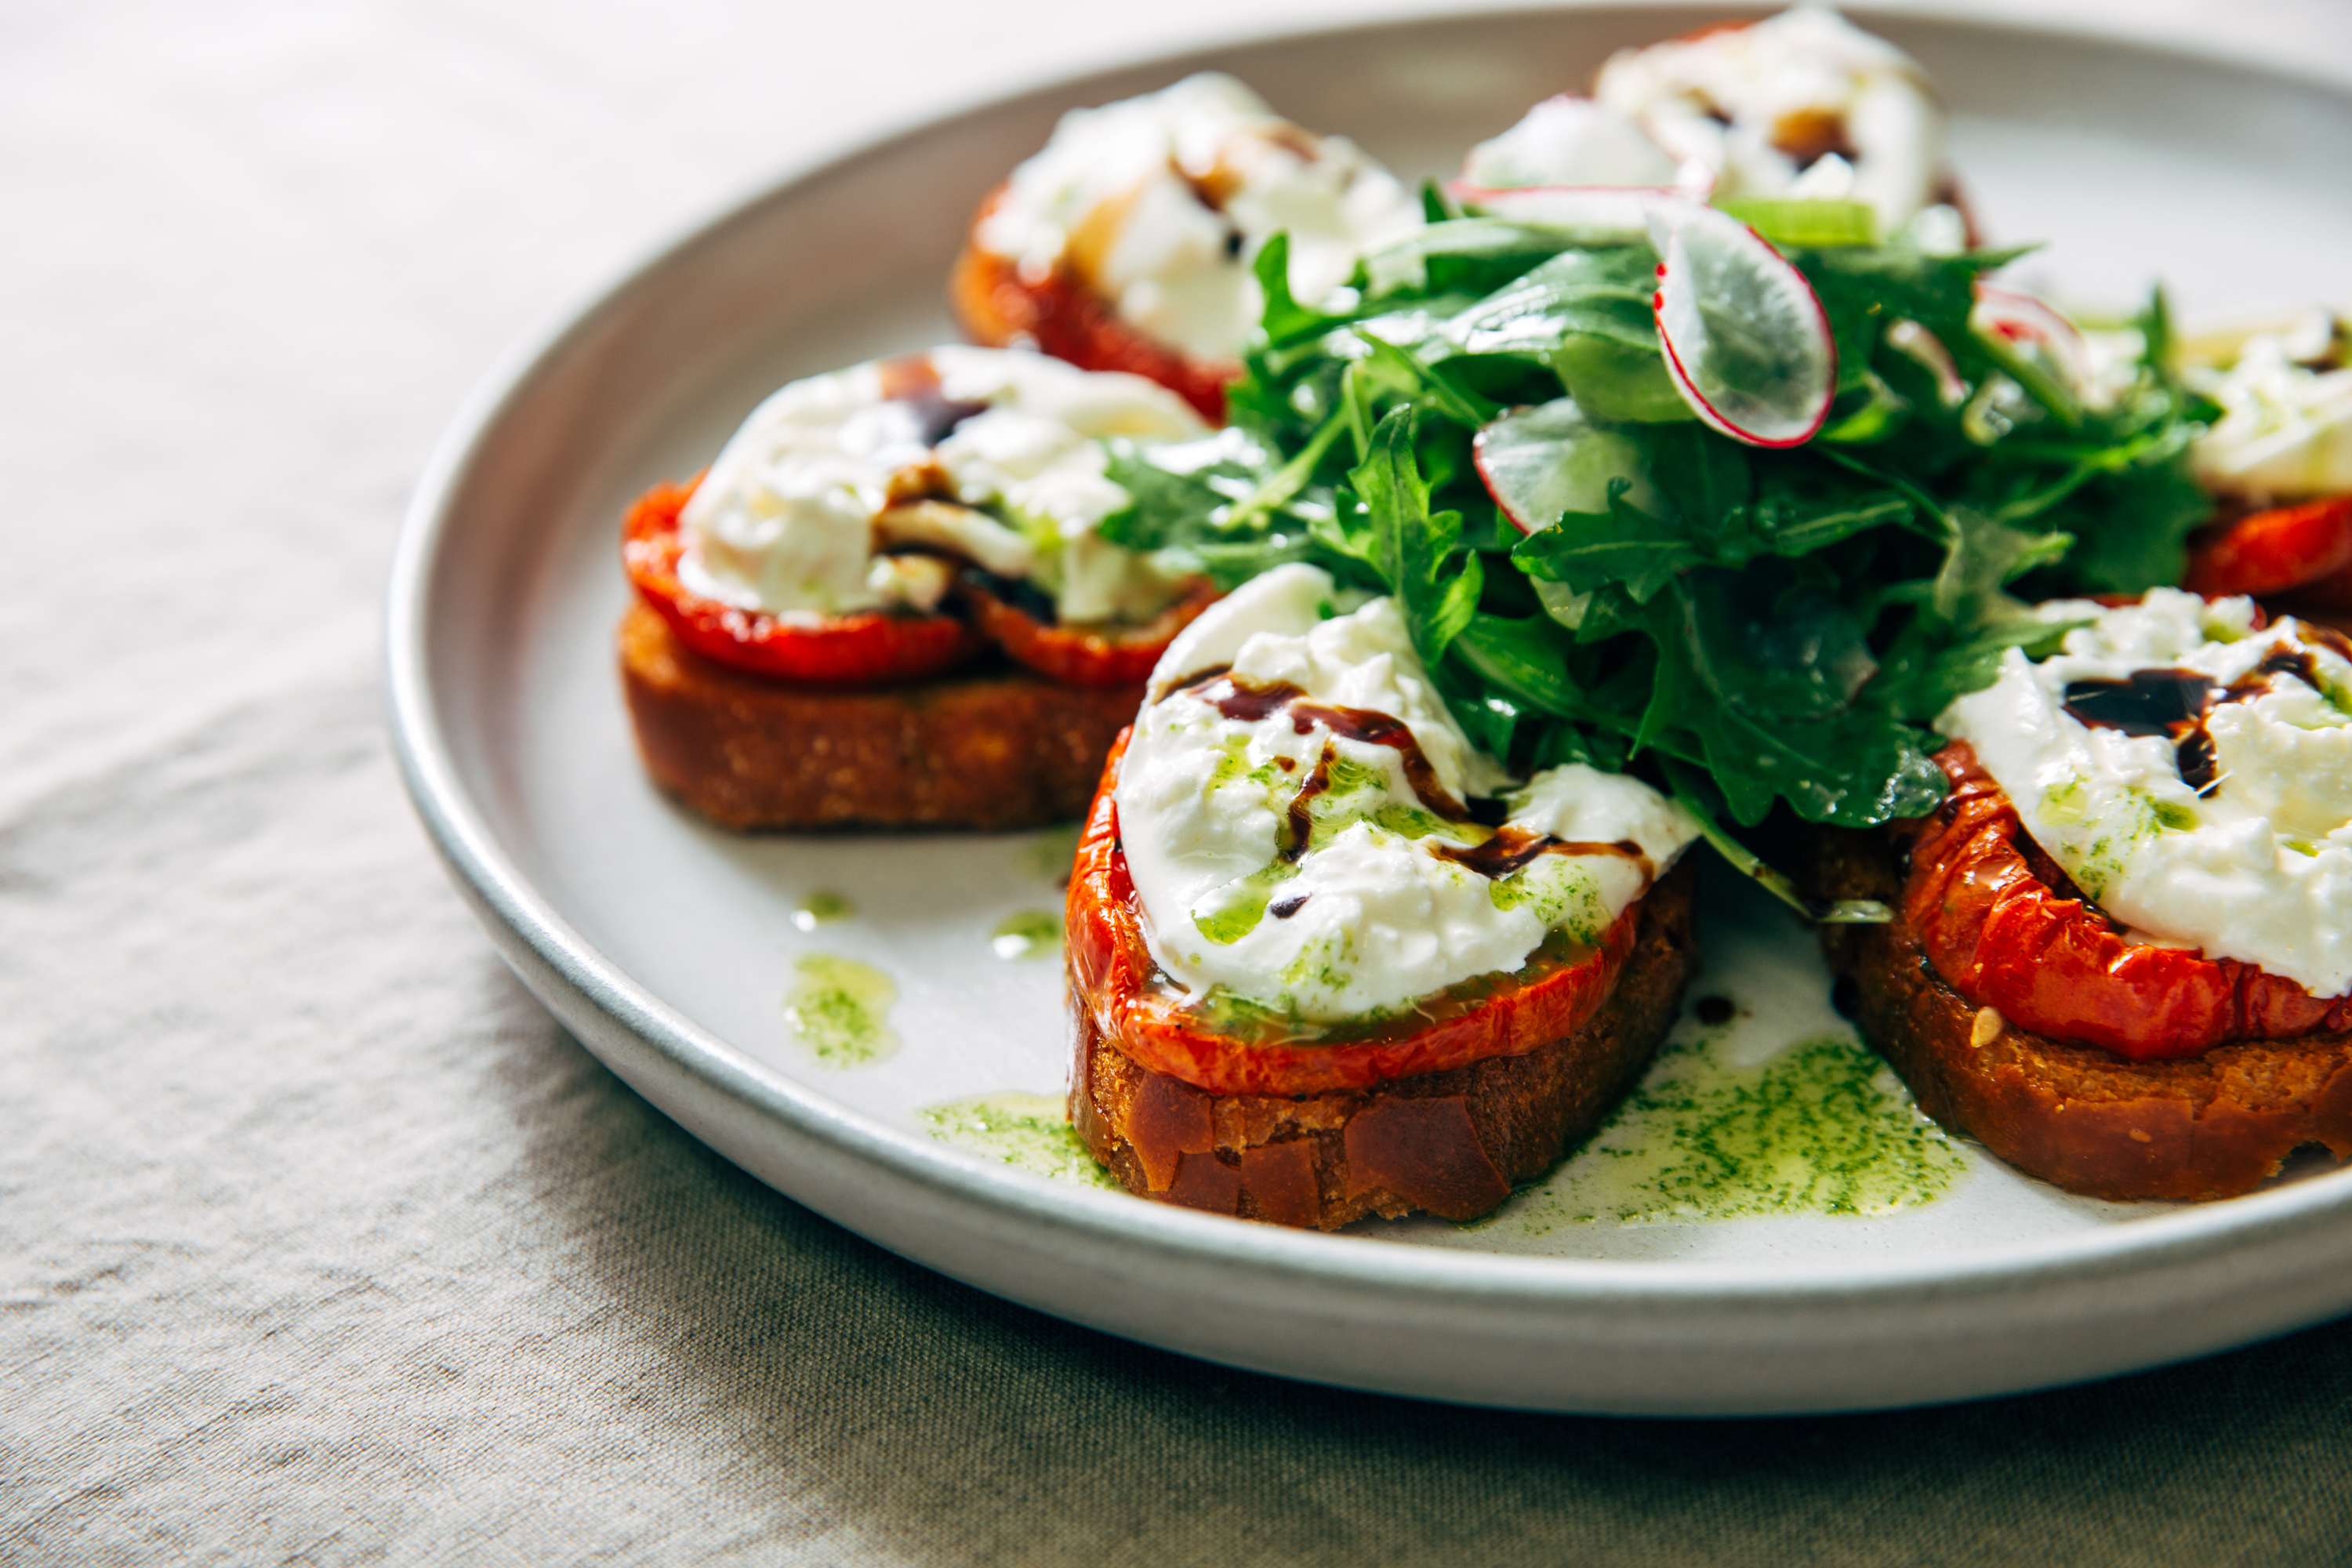 Reel Club's Buratta Bruschetta